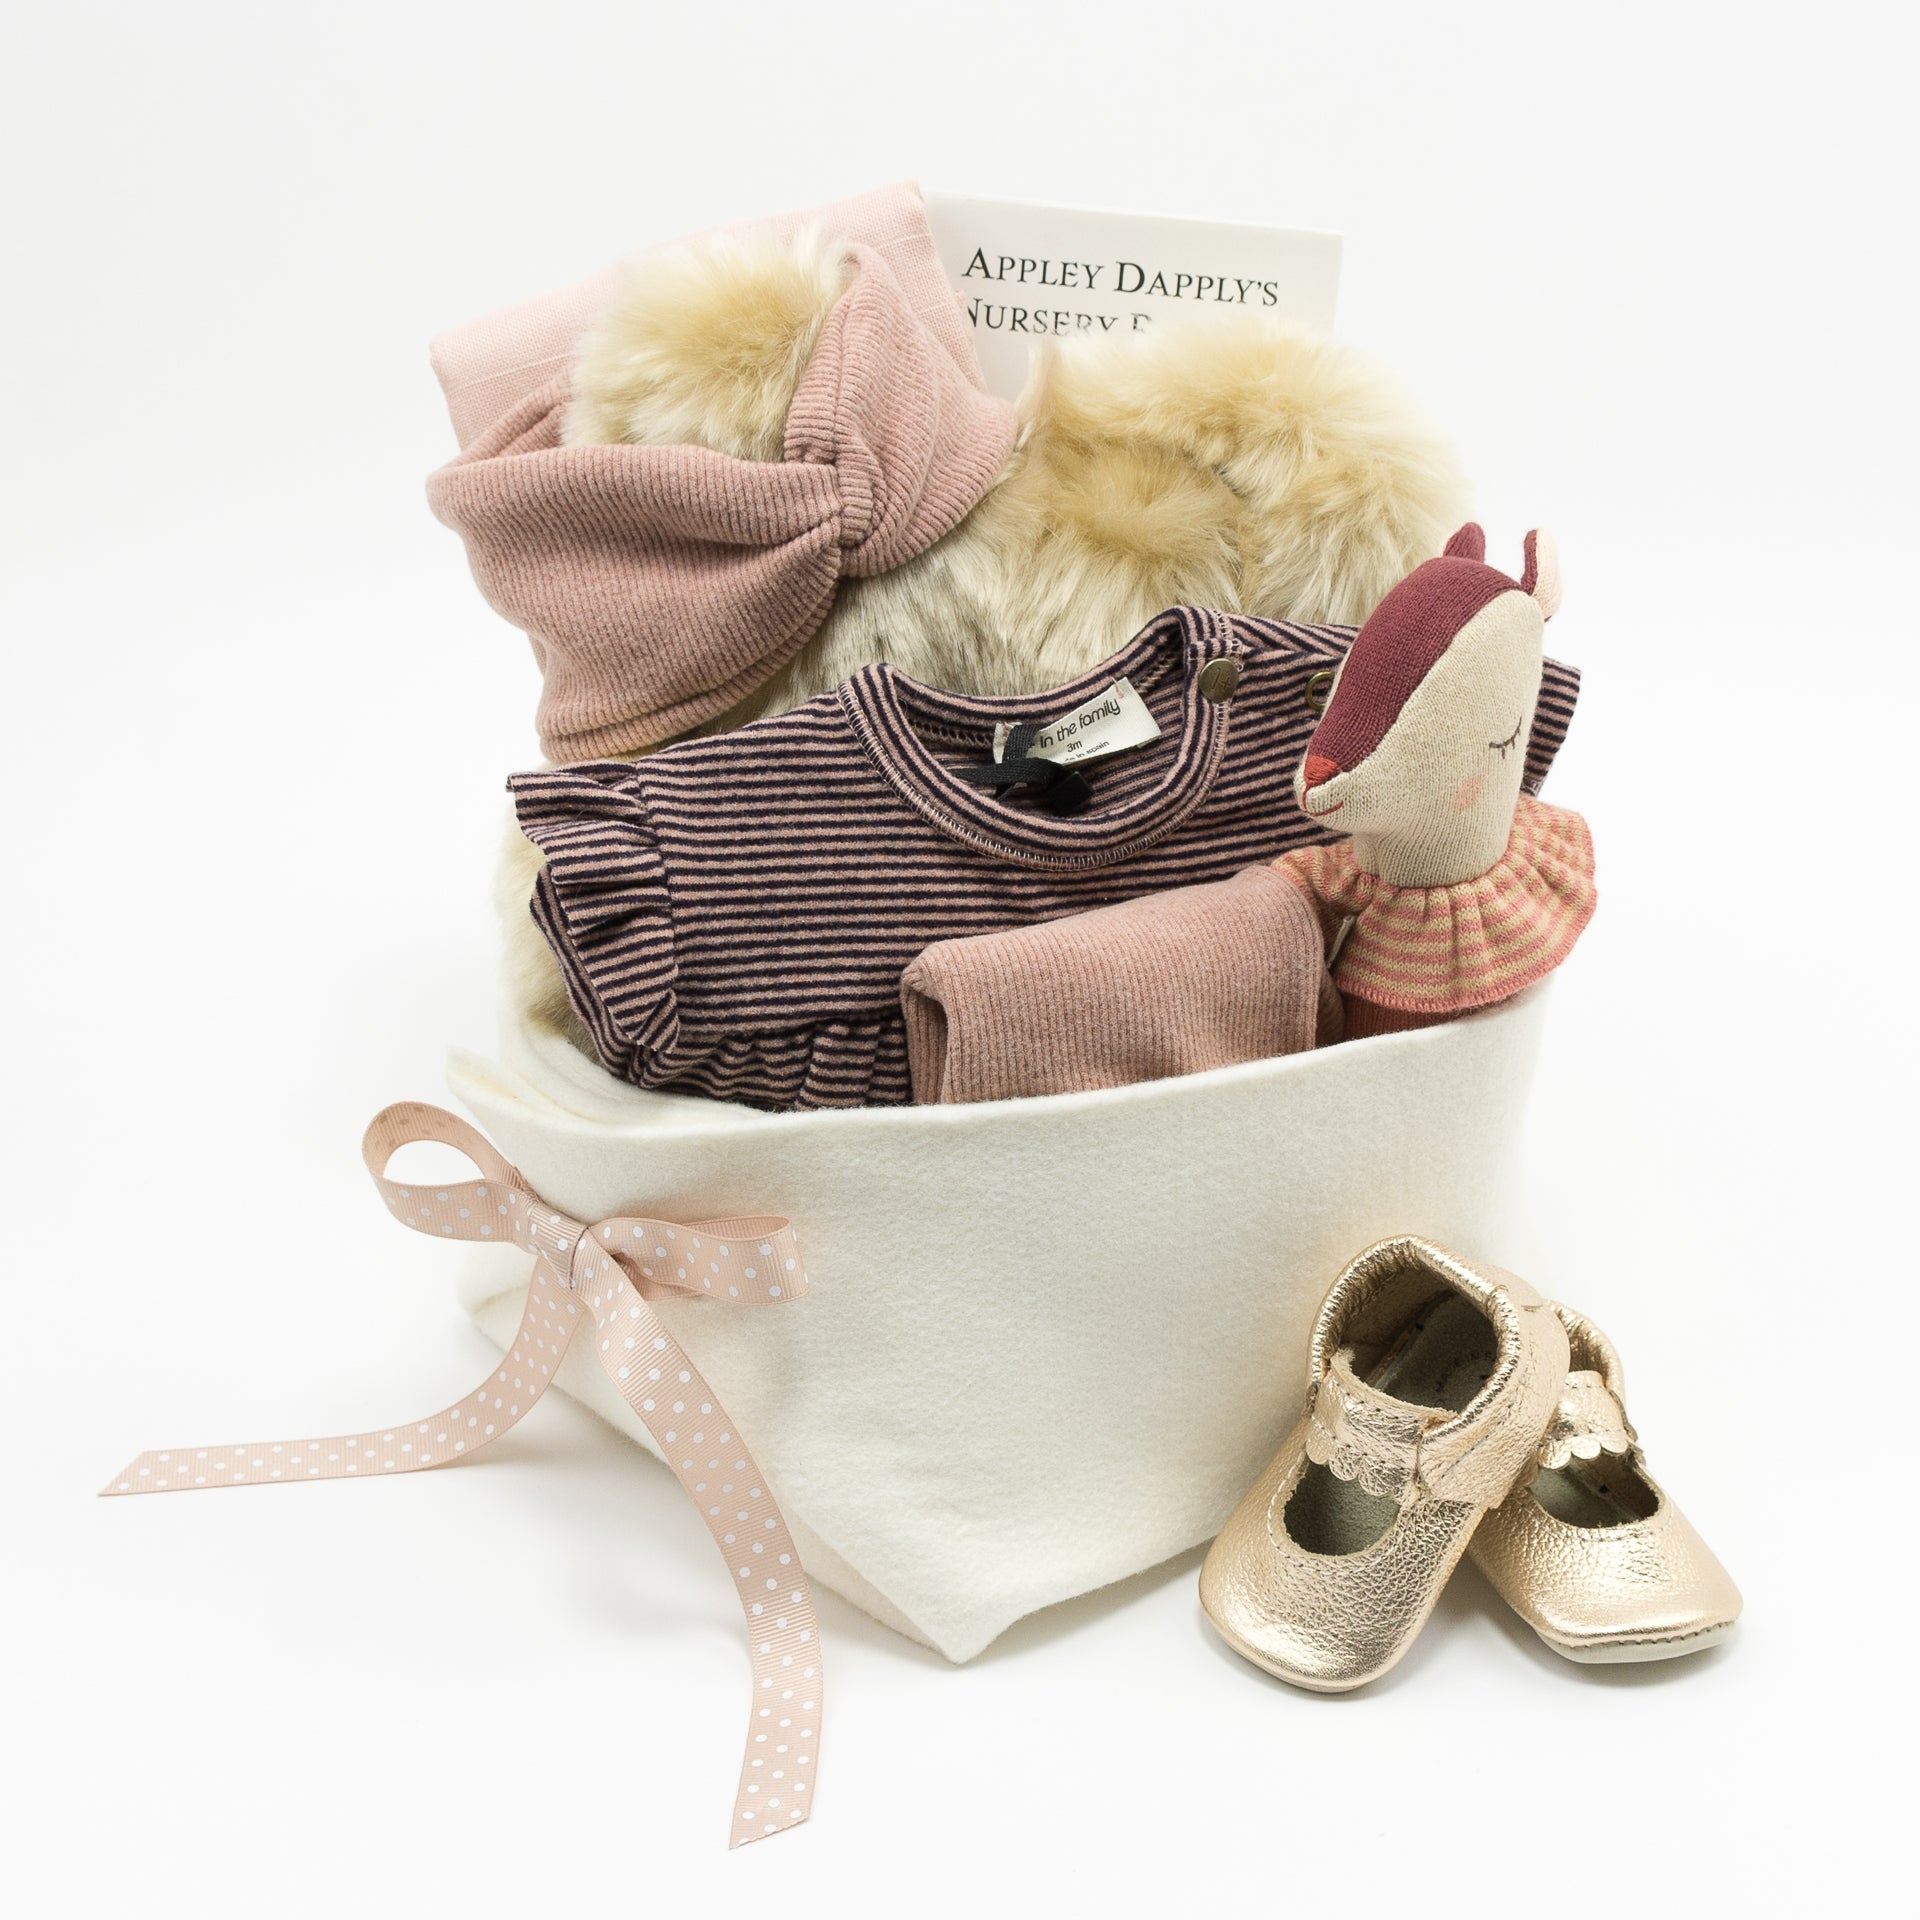 Luxury Baby Girl Gift Basket at Bonjour Baby Baskets, perfect Corporate Baby Gift